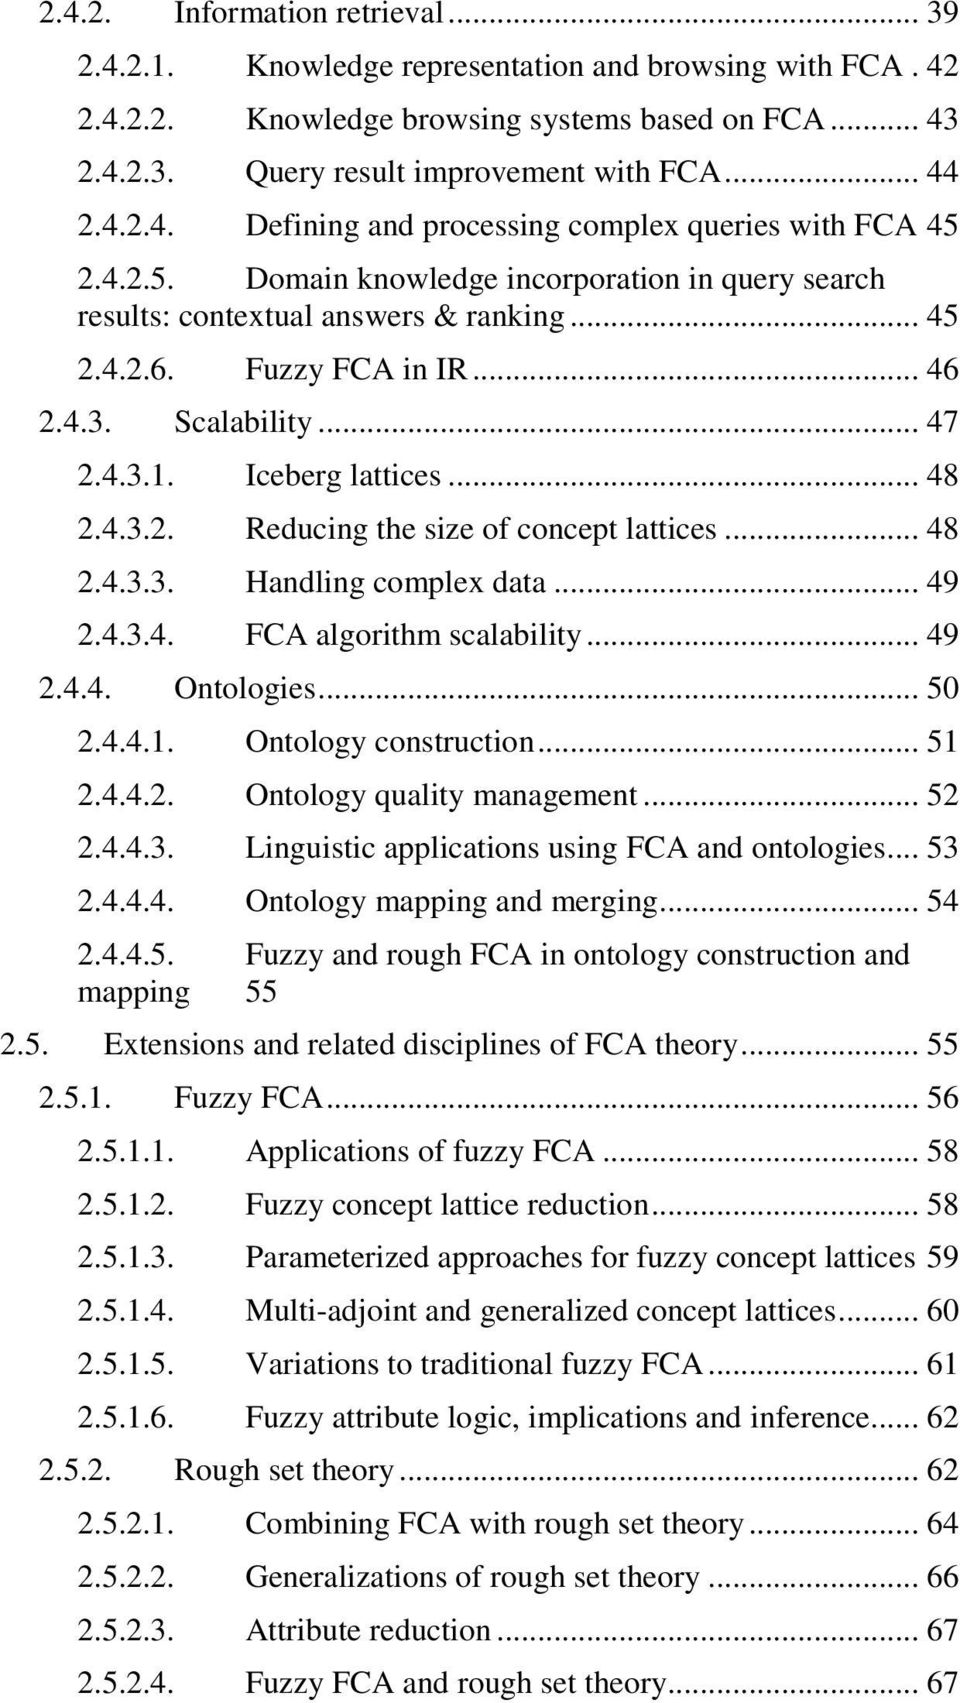 Scalability... 47 2.4.3.1. Iceberg lattices... 48 2.4.3.2. Reducing the size of concept lattices... 48 2.4.3.3. Handling complex data... 49 2.4.3.4. FCA algorithm scalability... 49 2.4.4. Ontologies.